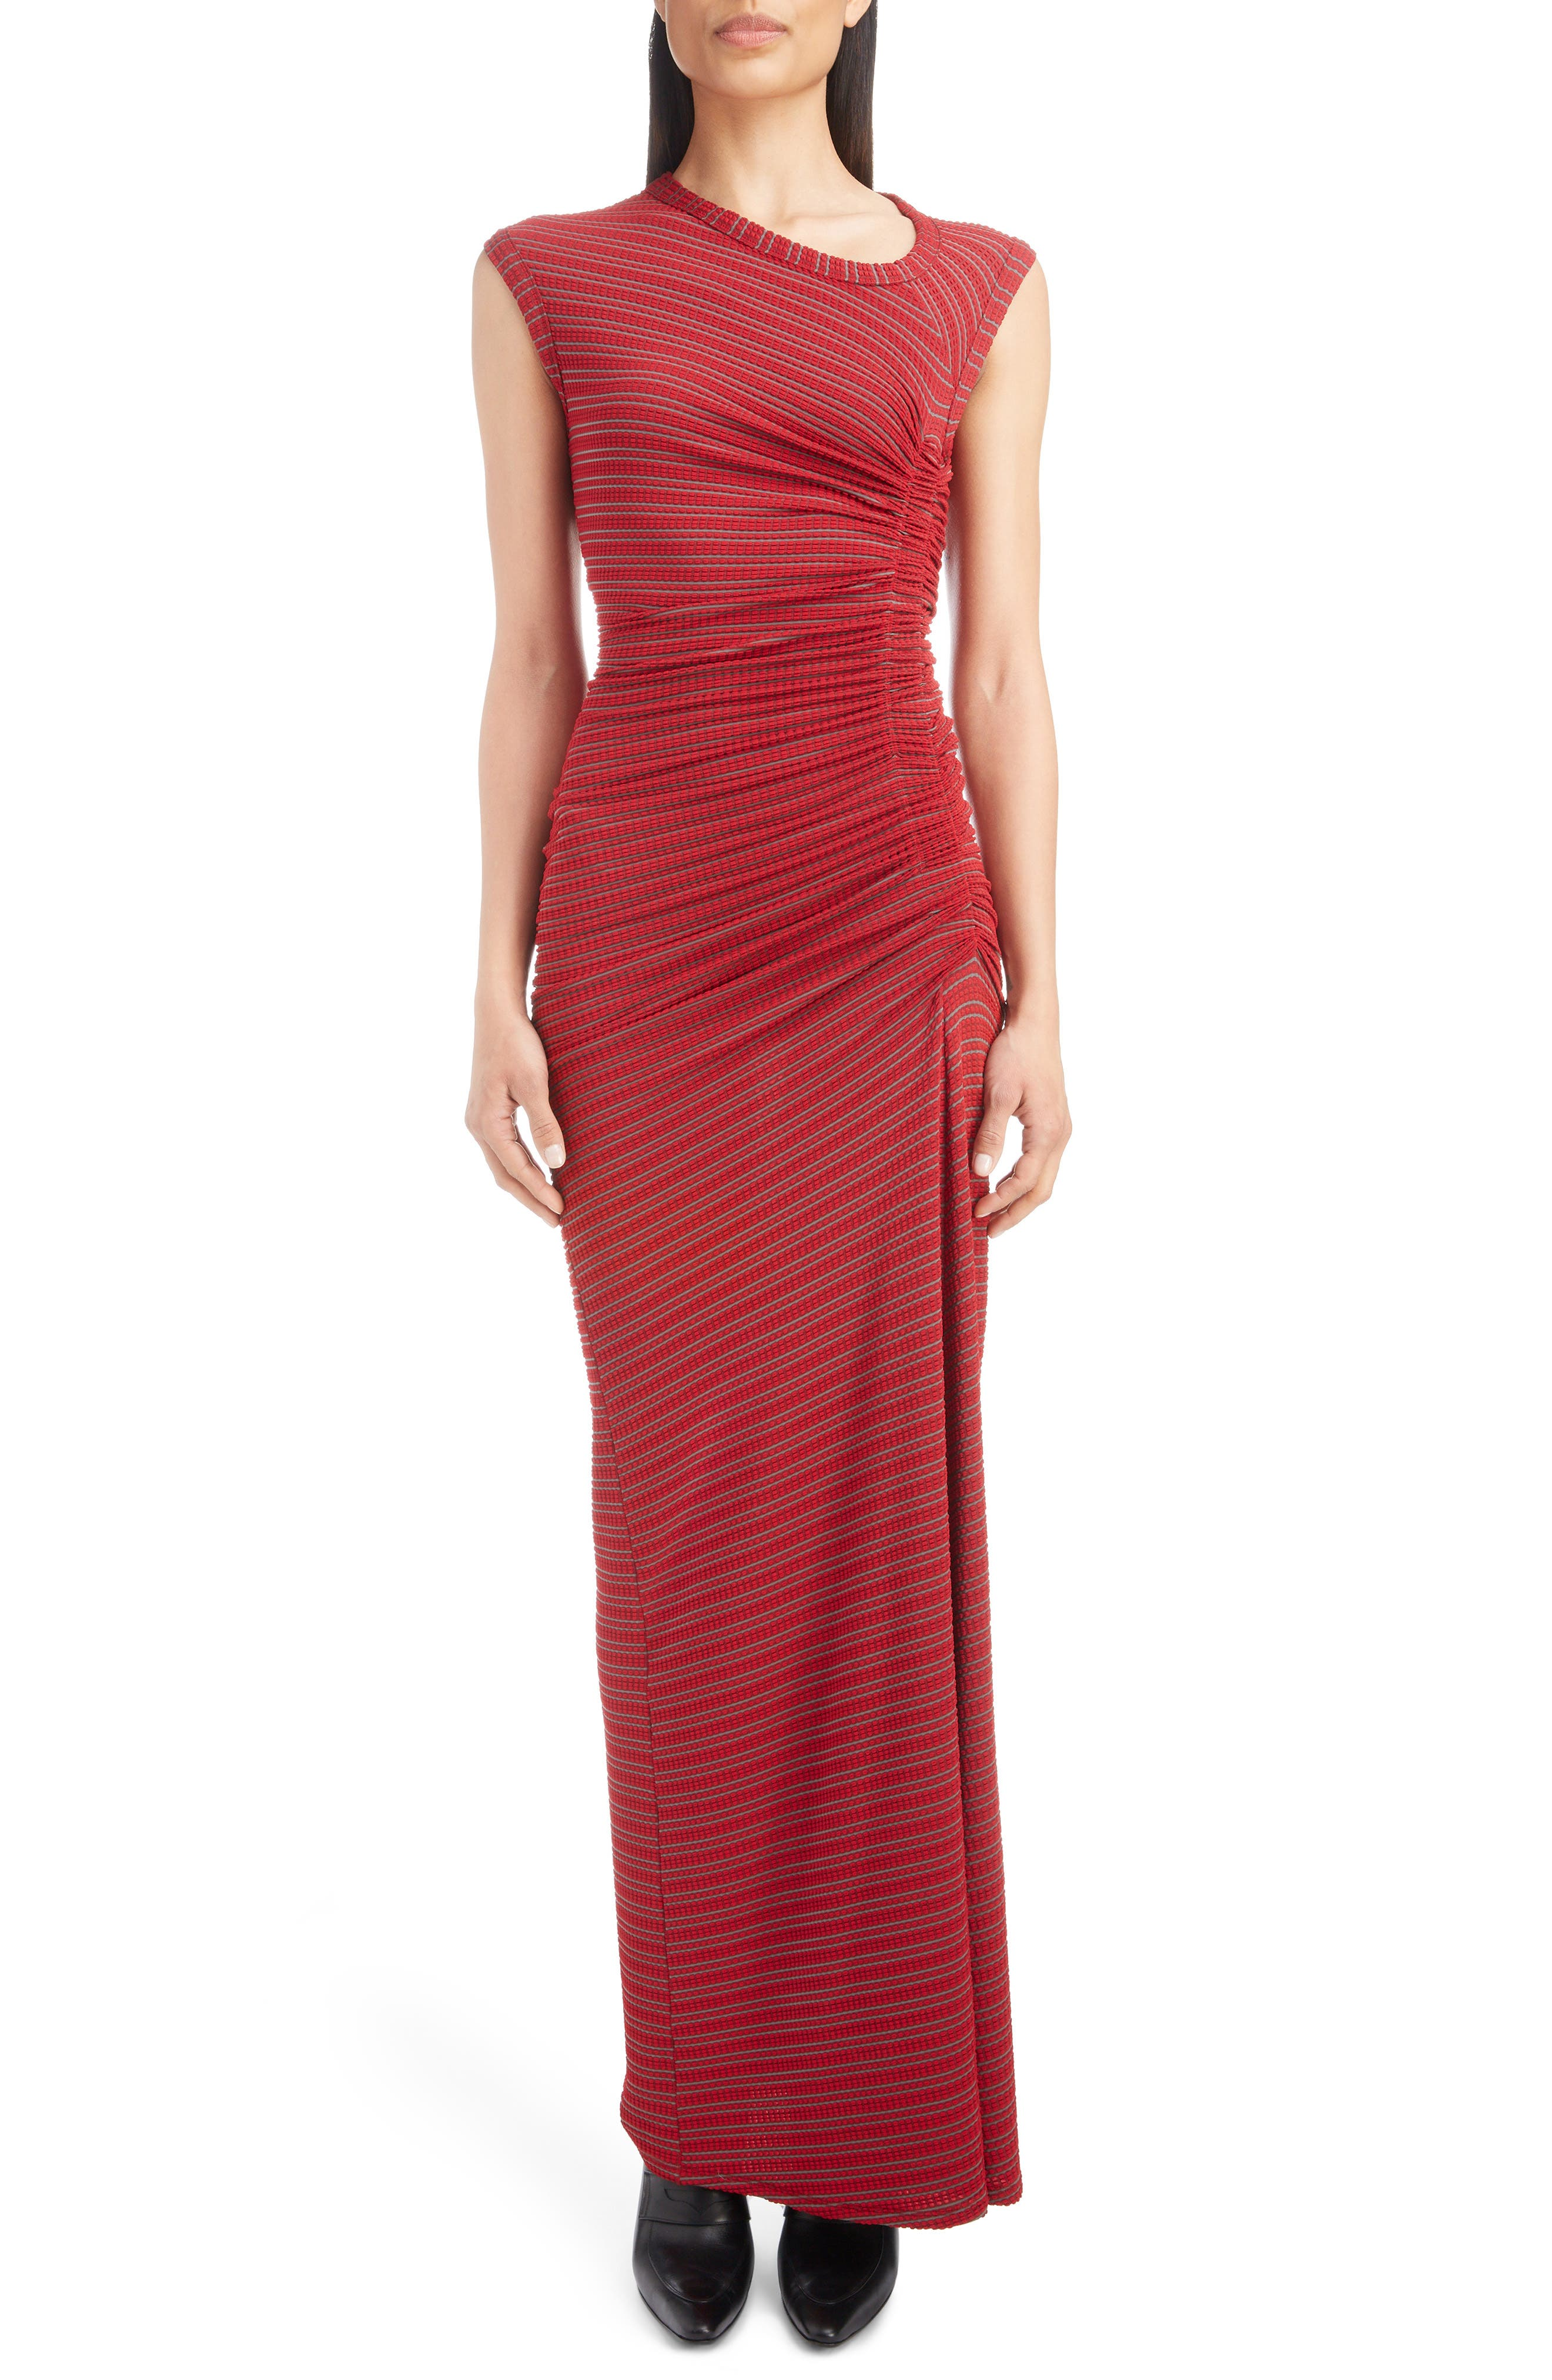 ATLEIN Ruched Textured Jersey Dress in Red